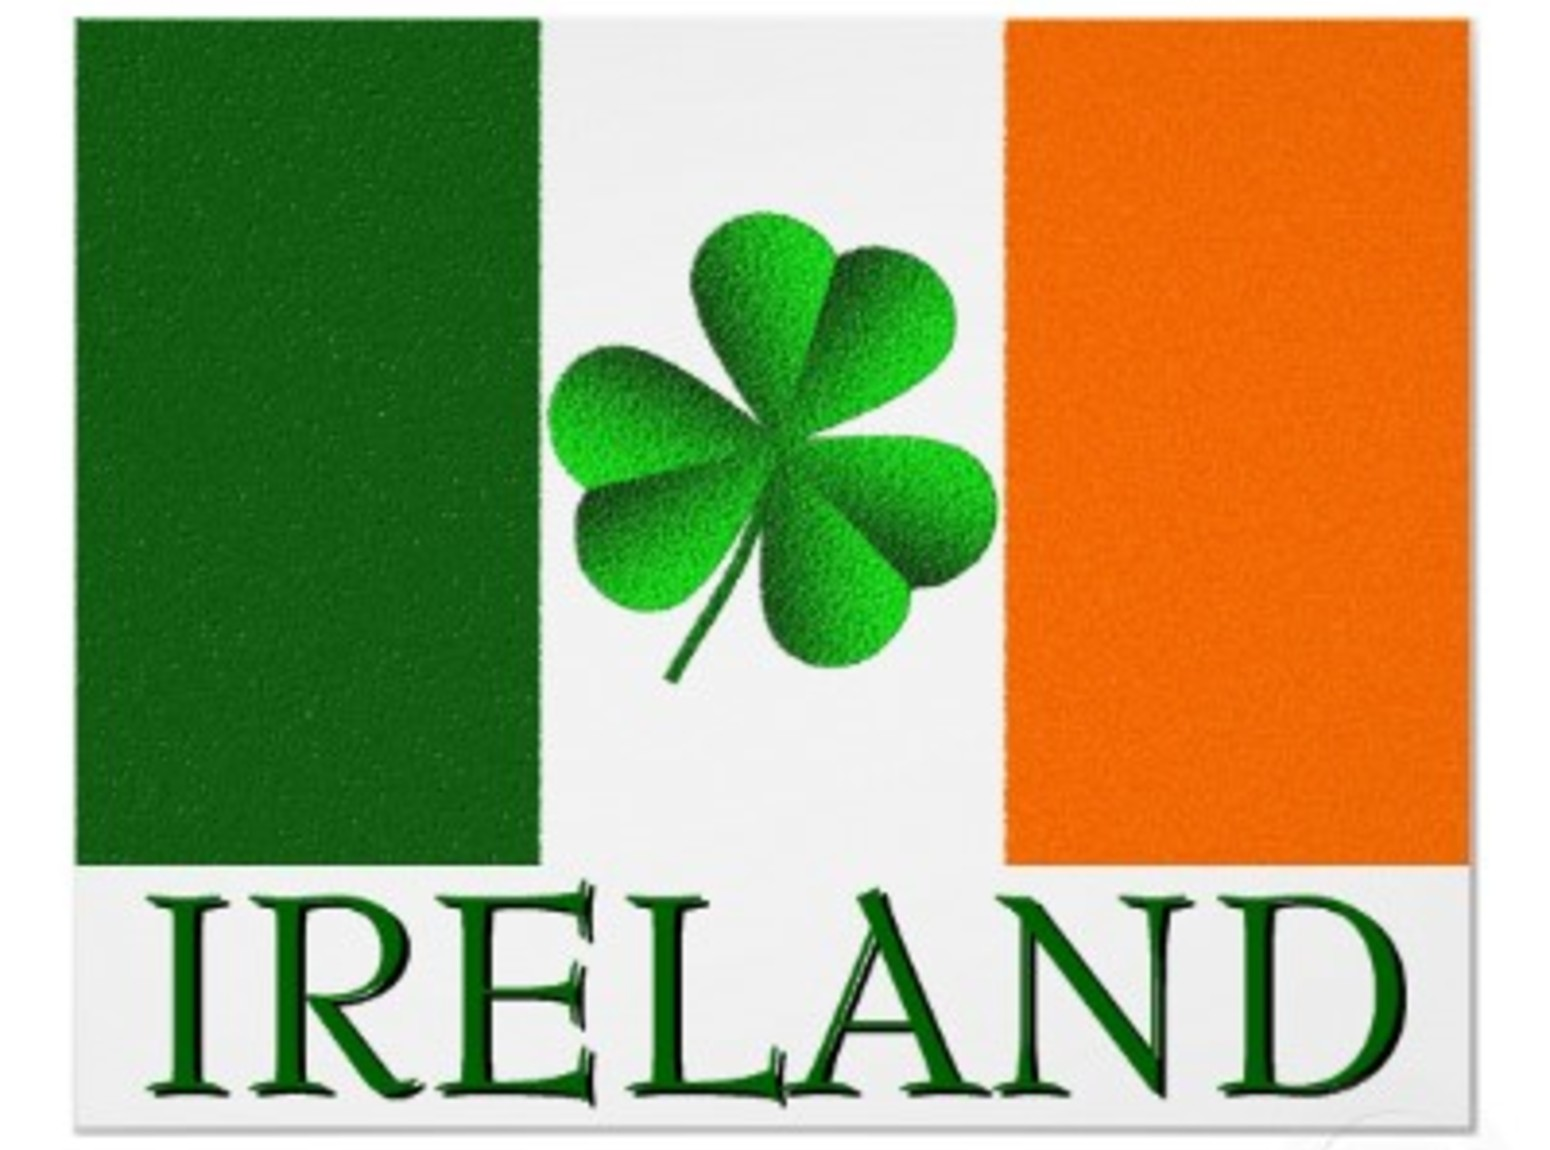 What does irelands flag look like